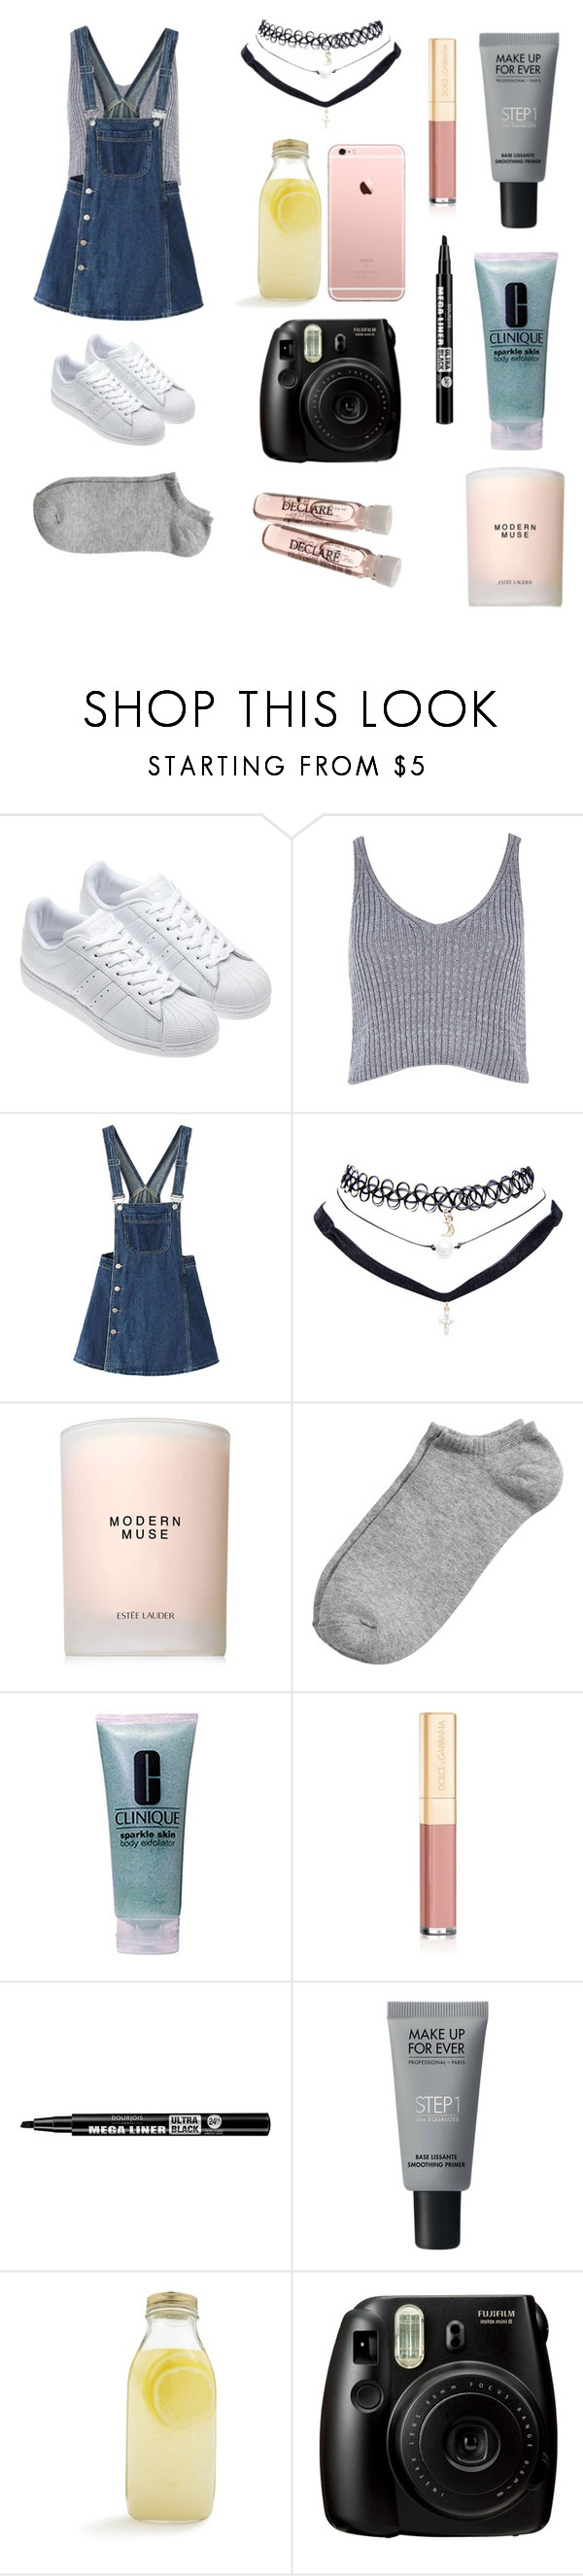 """Prety girl 2"" by yulidounut liked on Polyvore featuring"